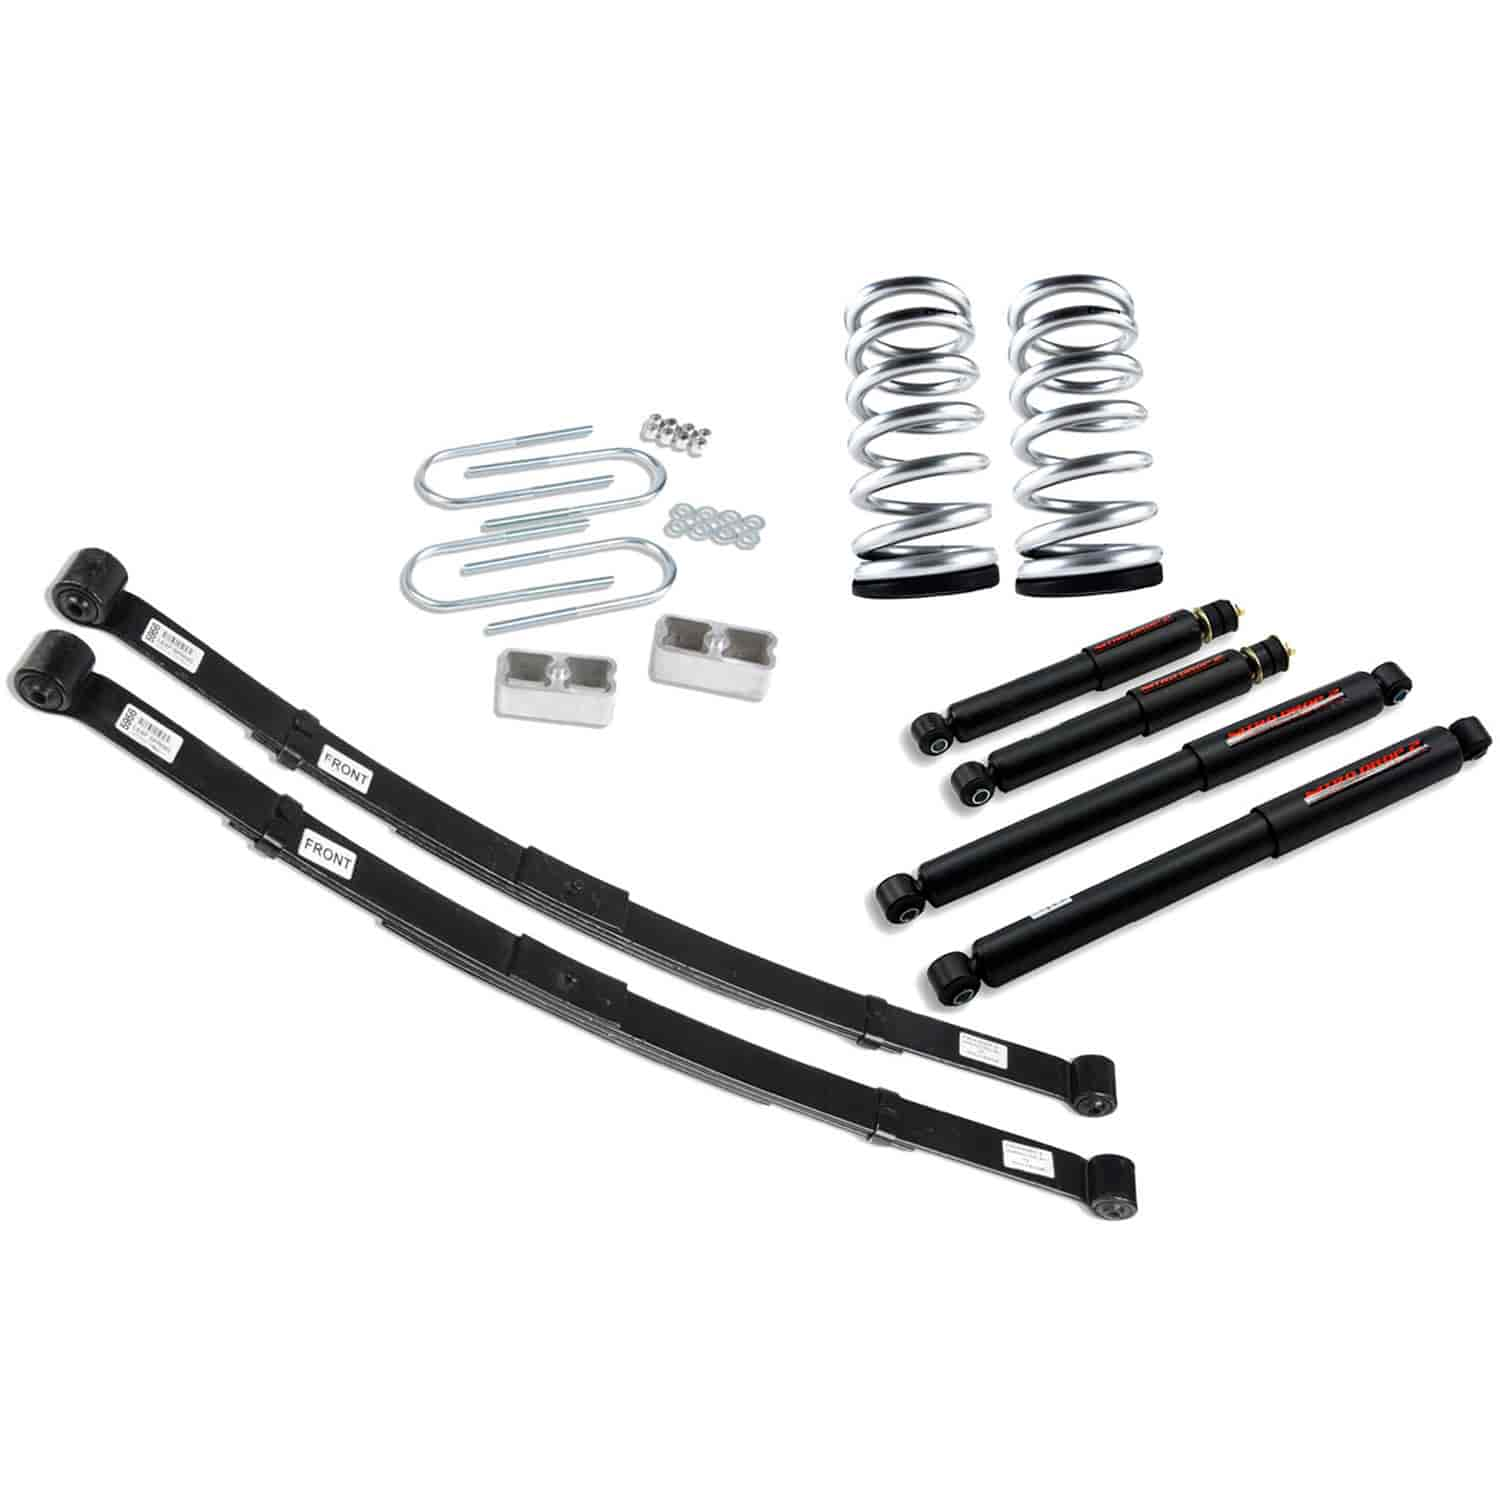 Belltech 568nd Complete Lowering Kit For Chevy